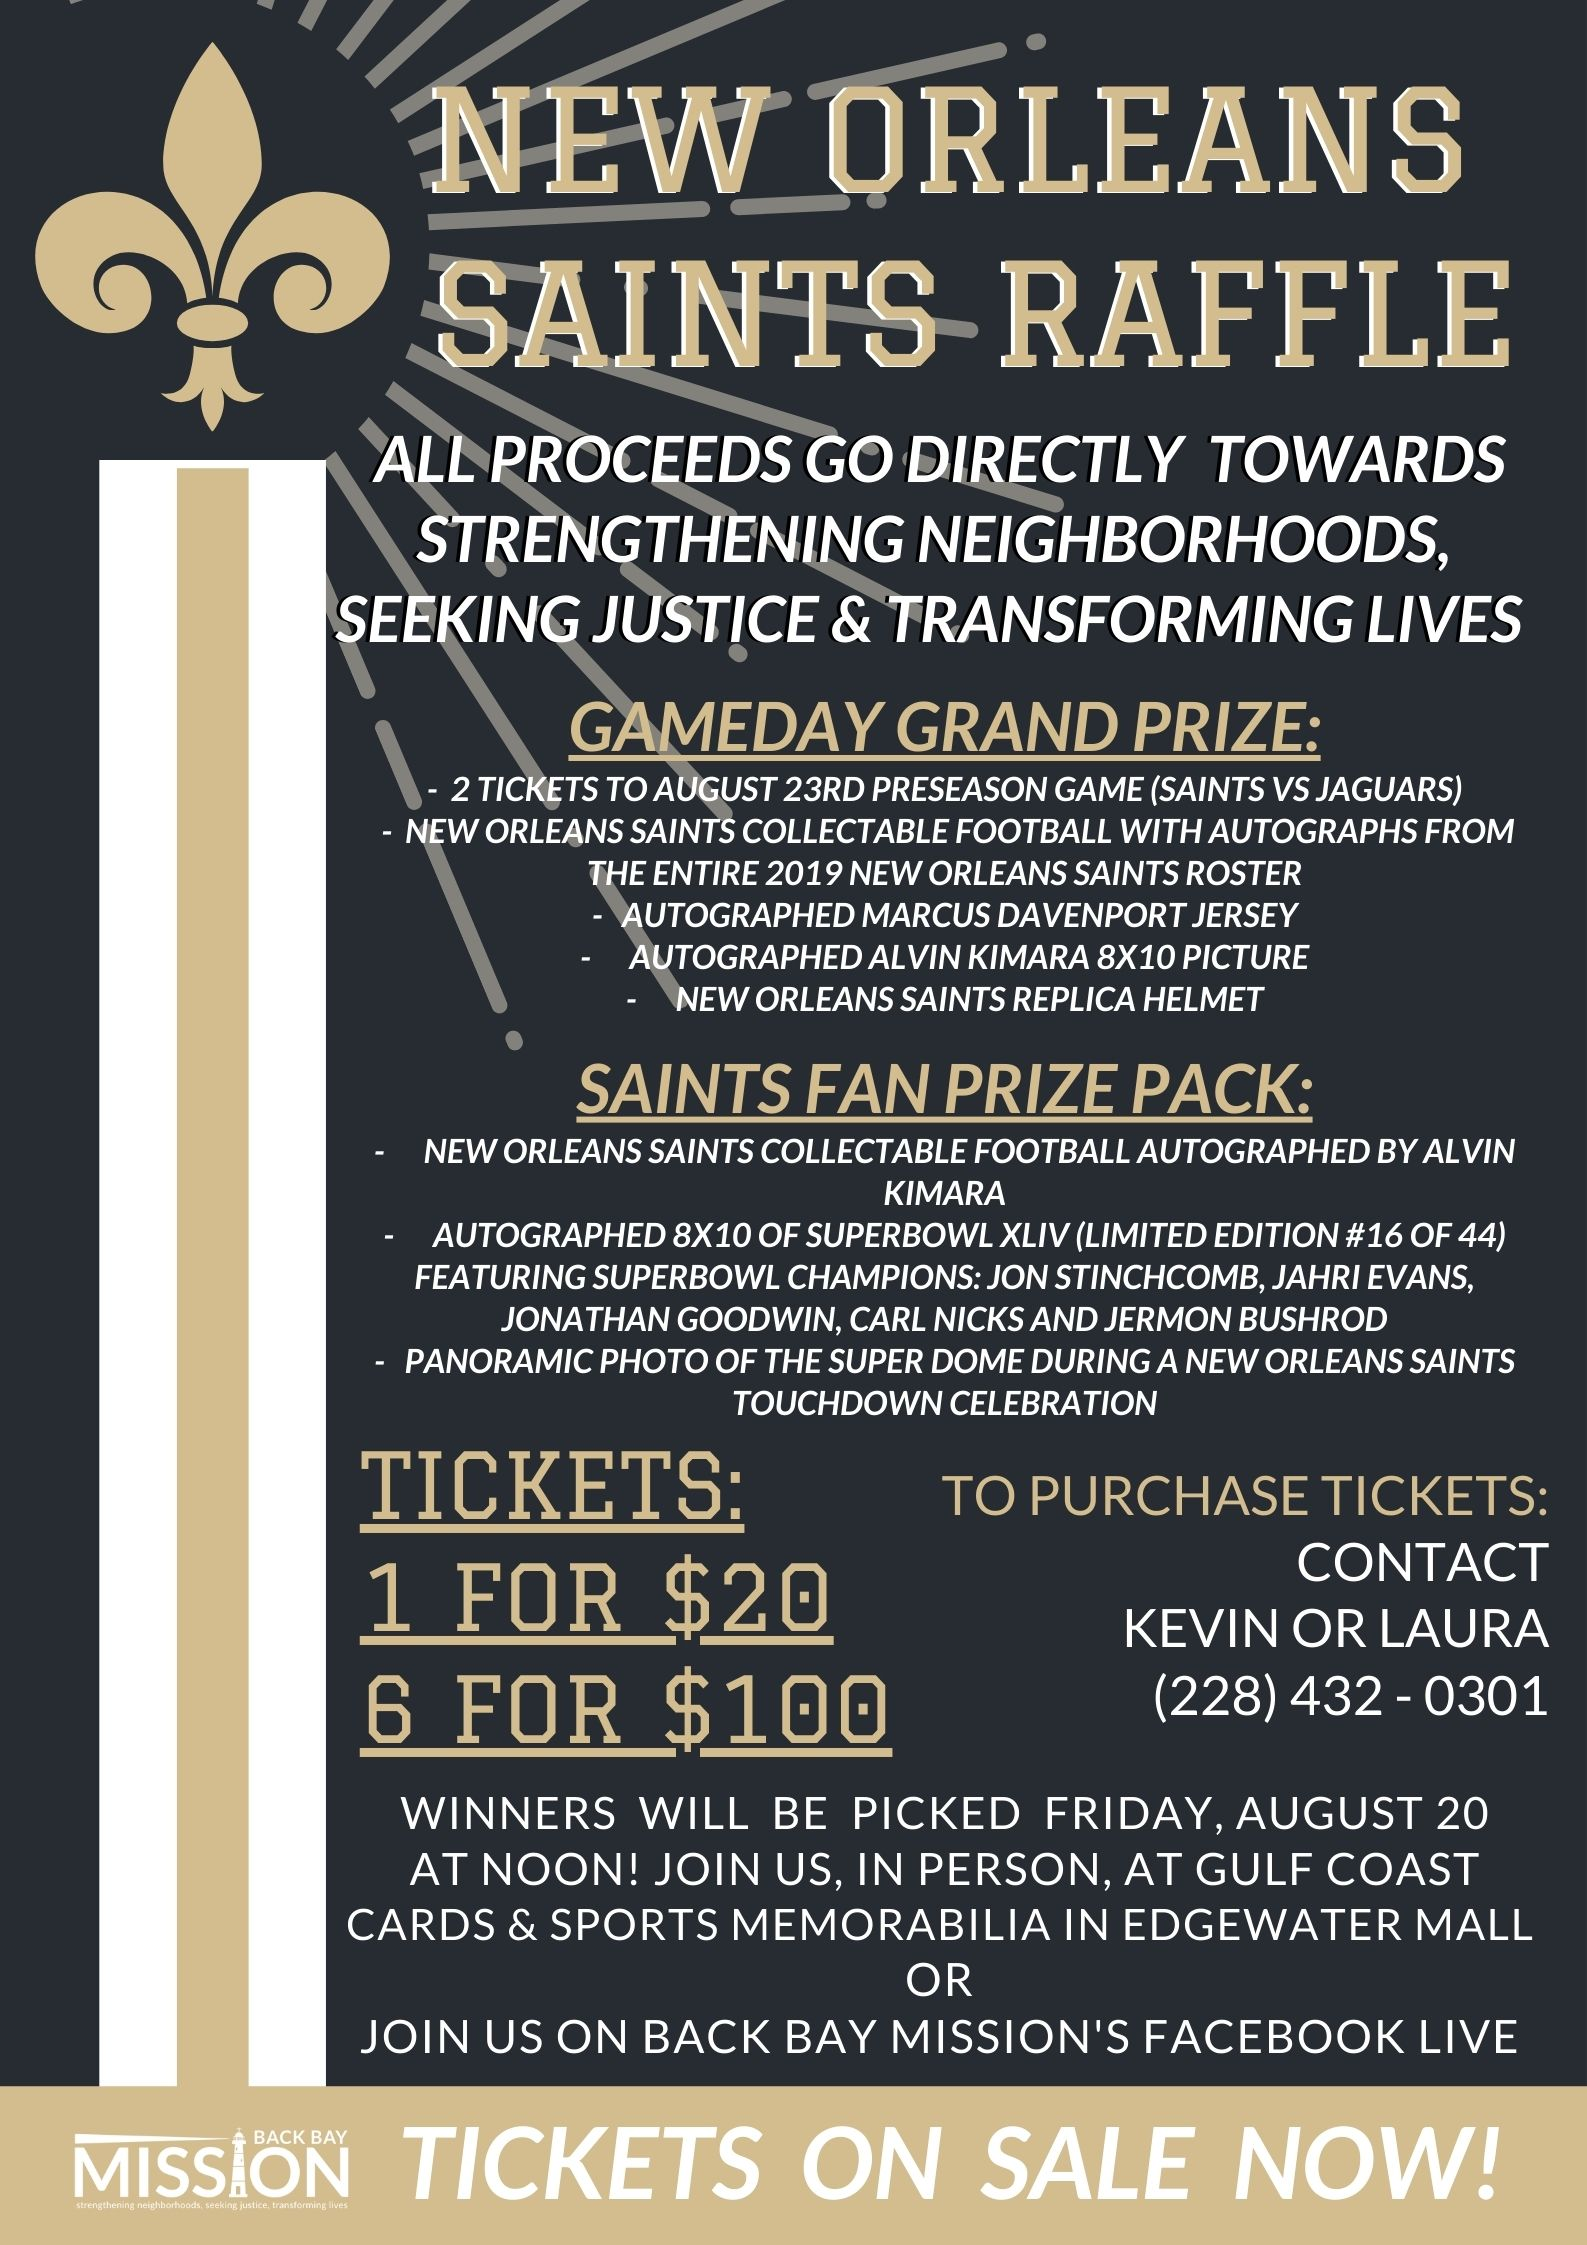 Tickets are ON SALE NOW for our New Orleans Saints Raffle!